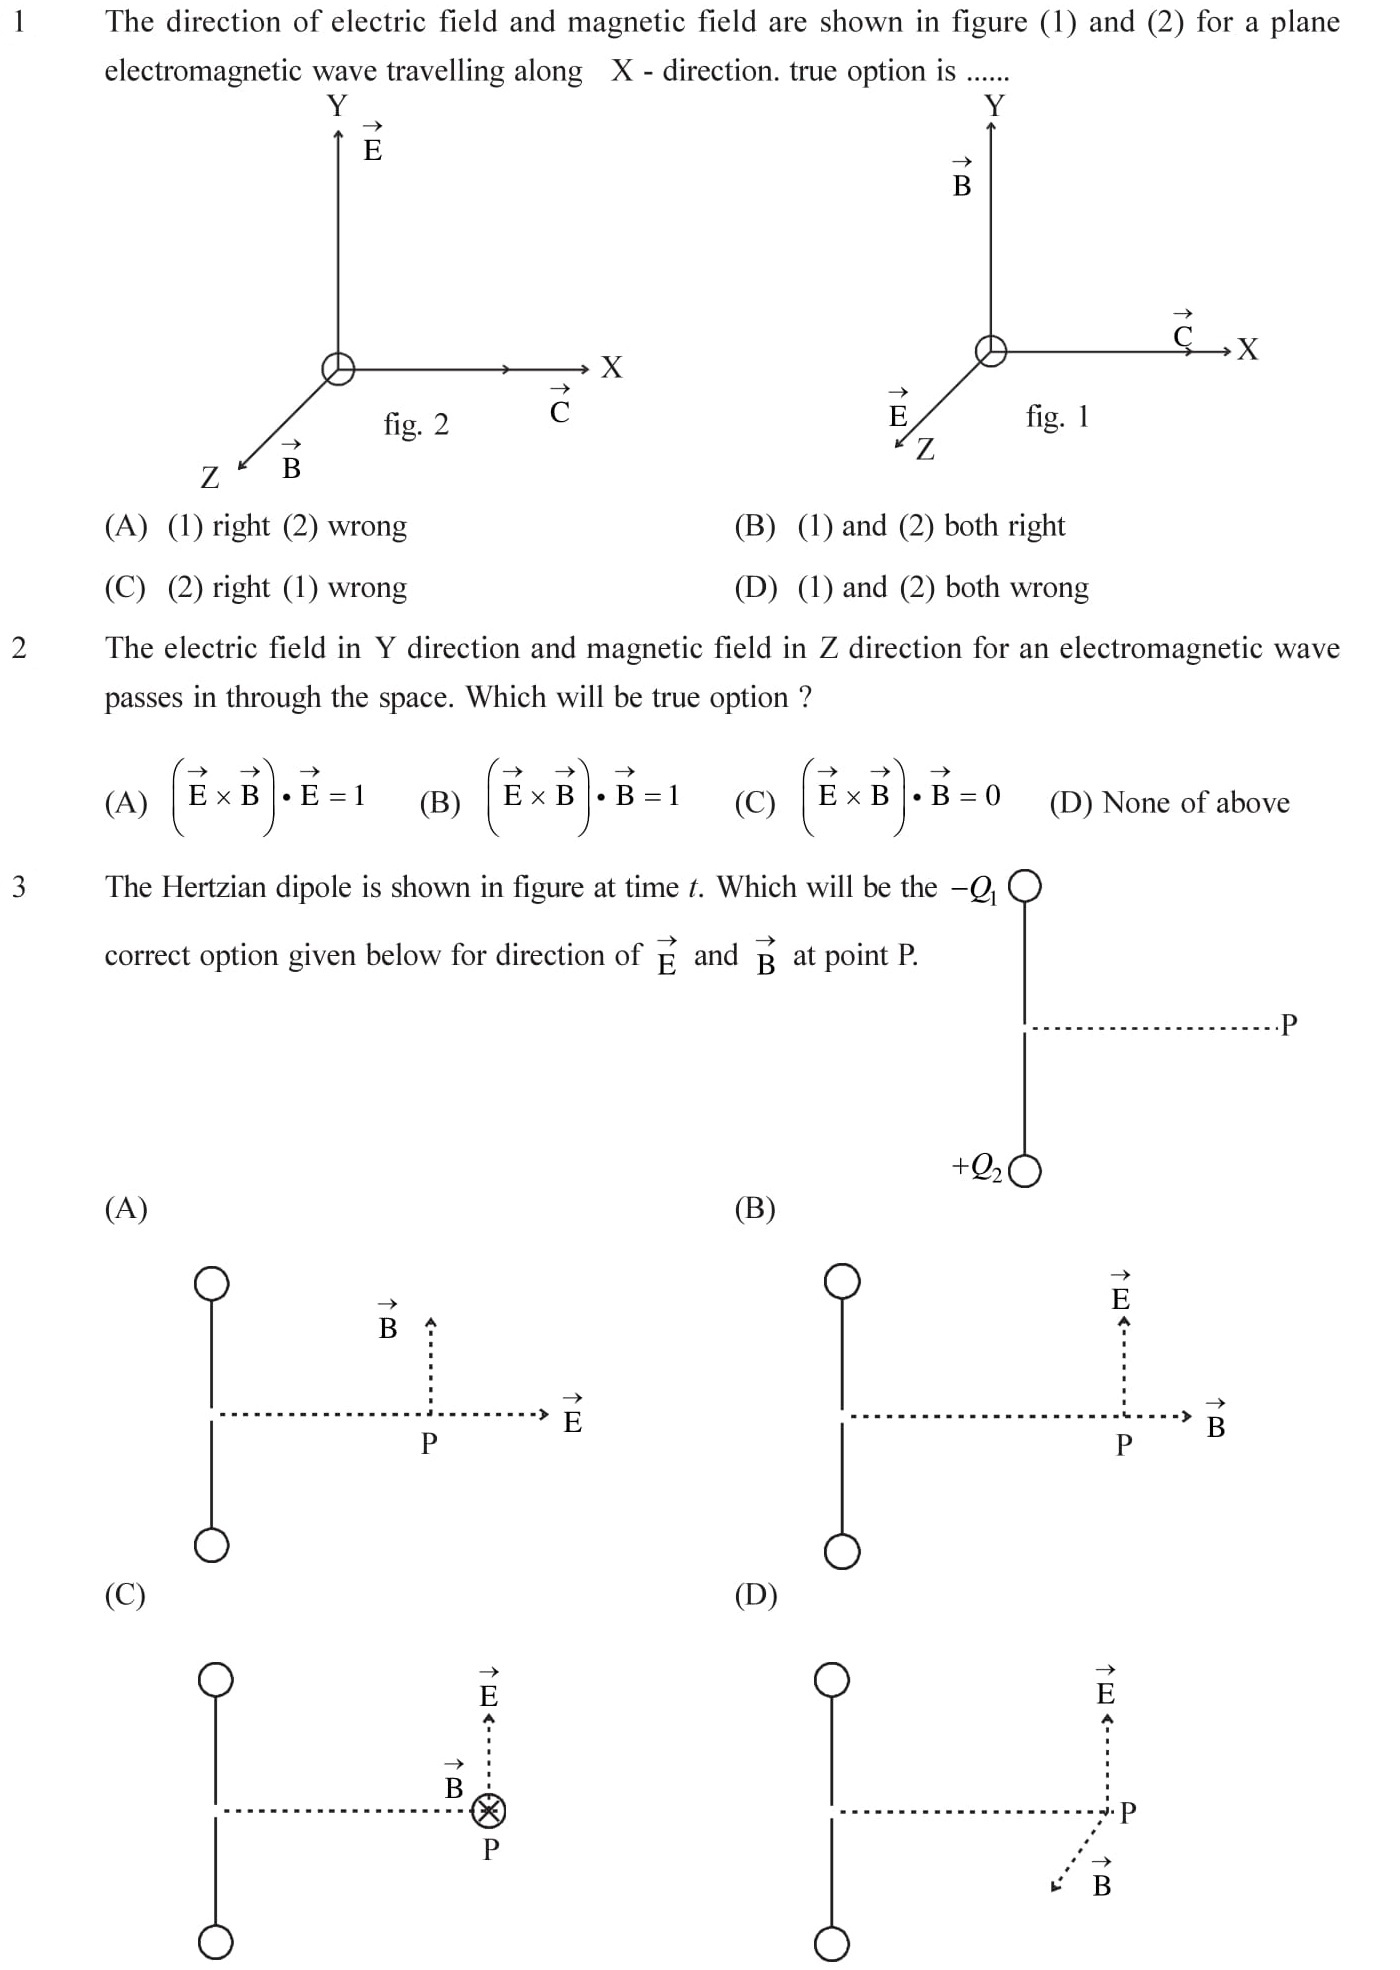 Questions based on Eletromagnetic Waves - EM Waves for Entrance Exams topic 1